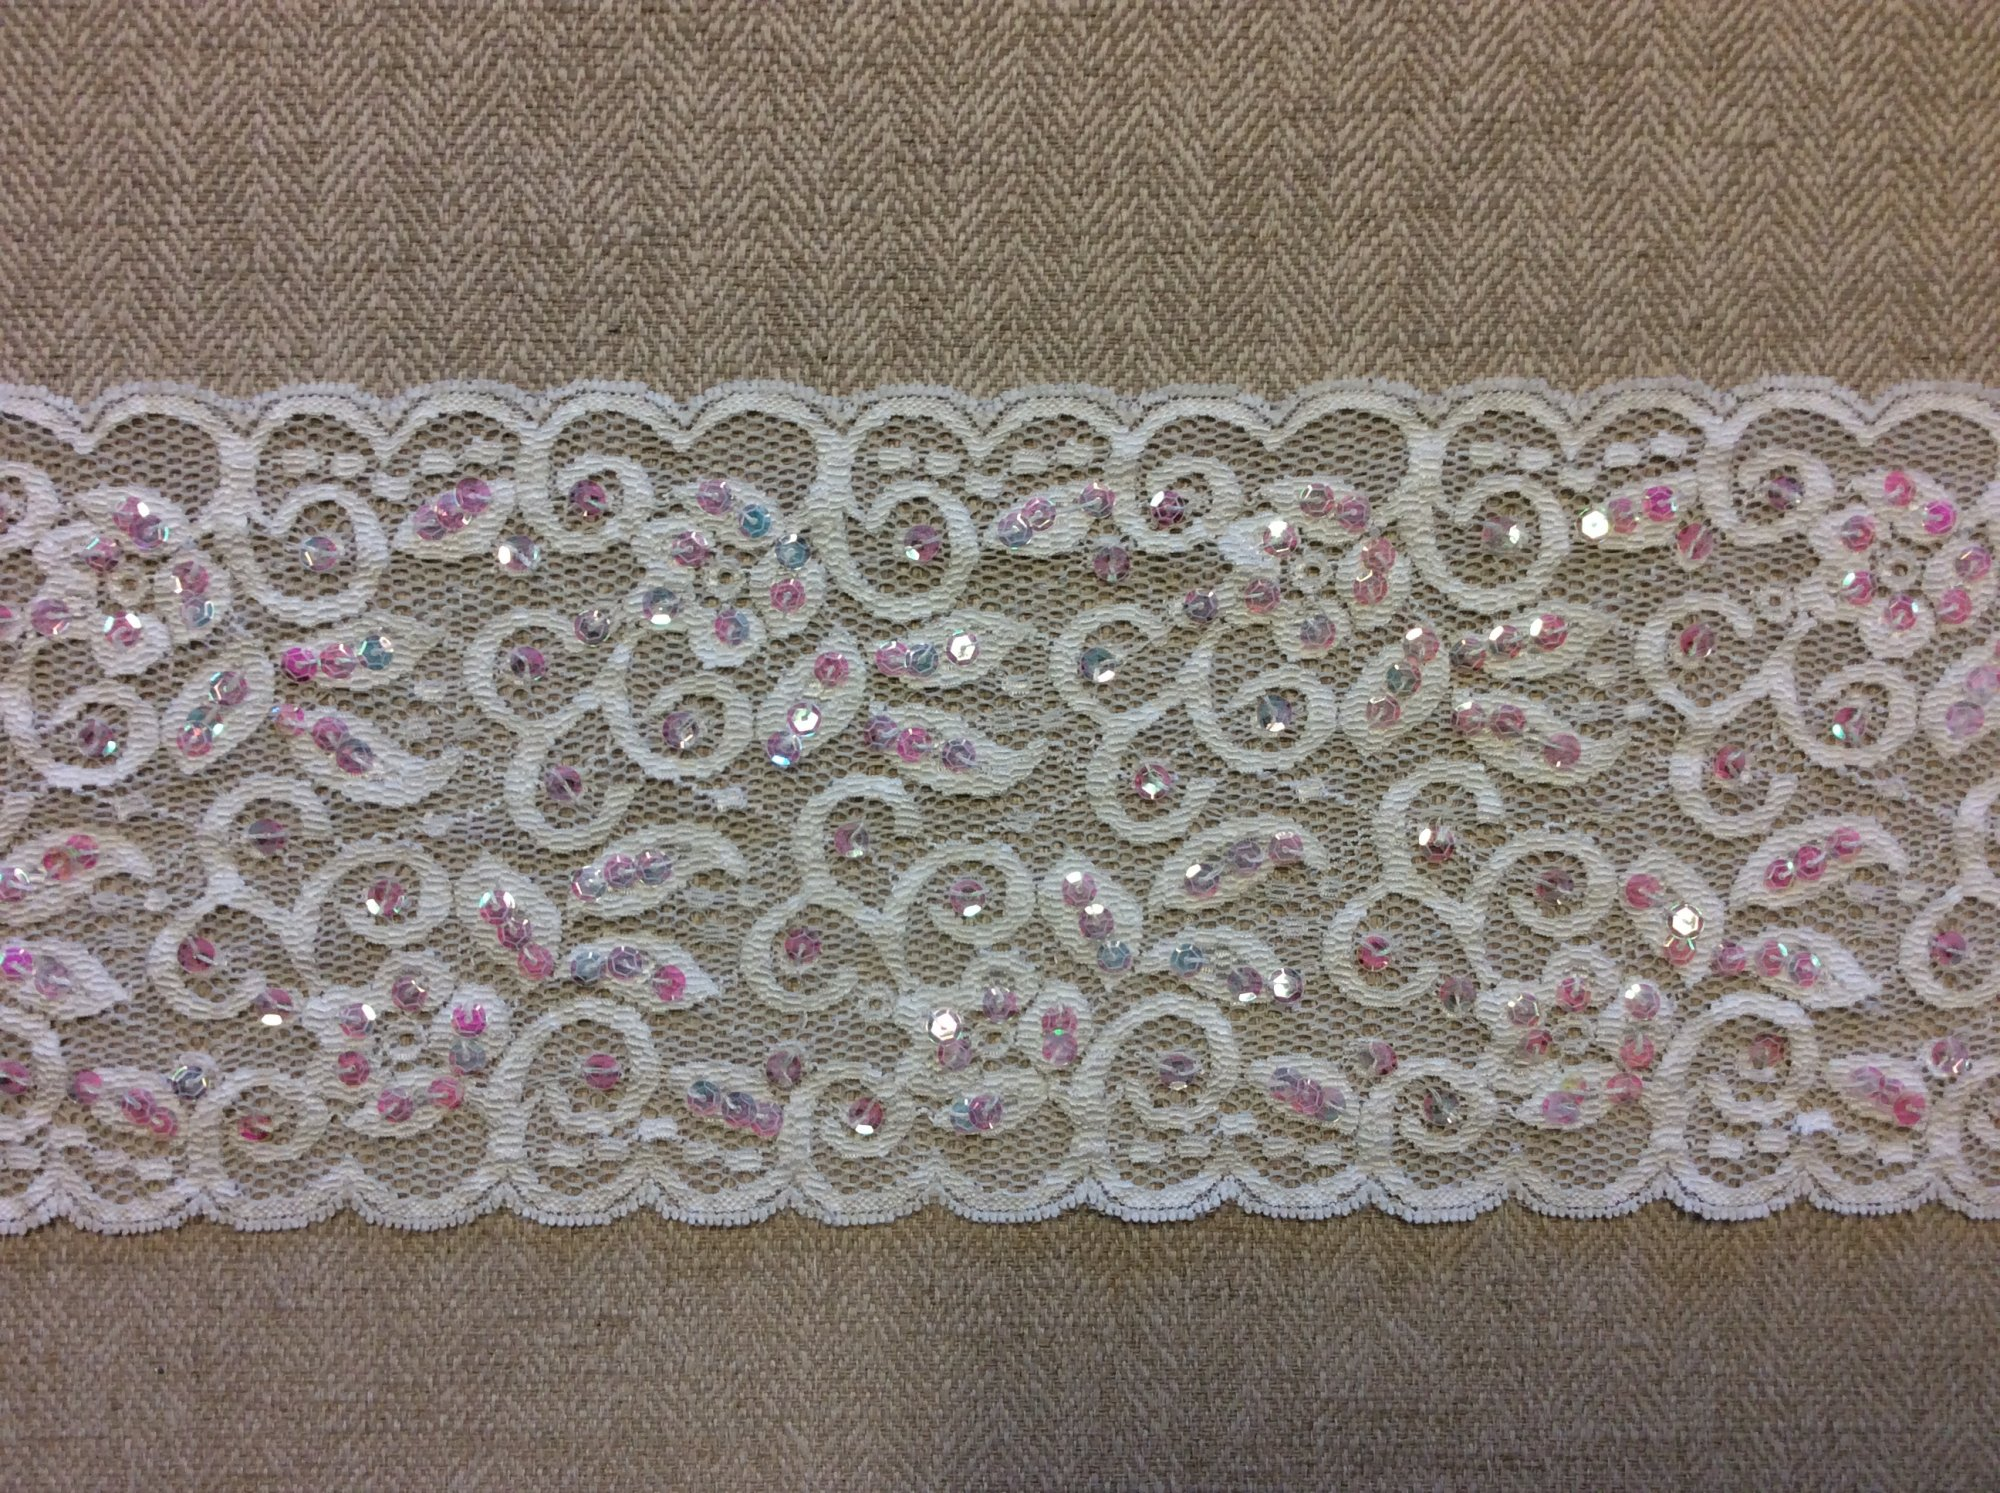 Wide Stretch White Lace with Light Pink Sequin Accents Apparel Fashion Trim RM78